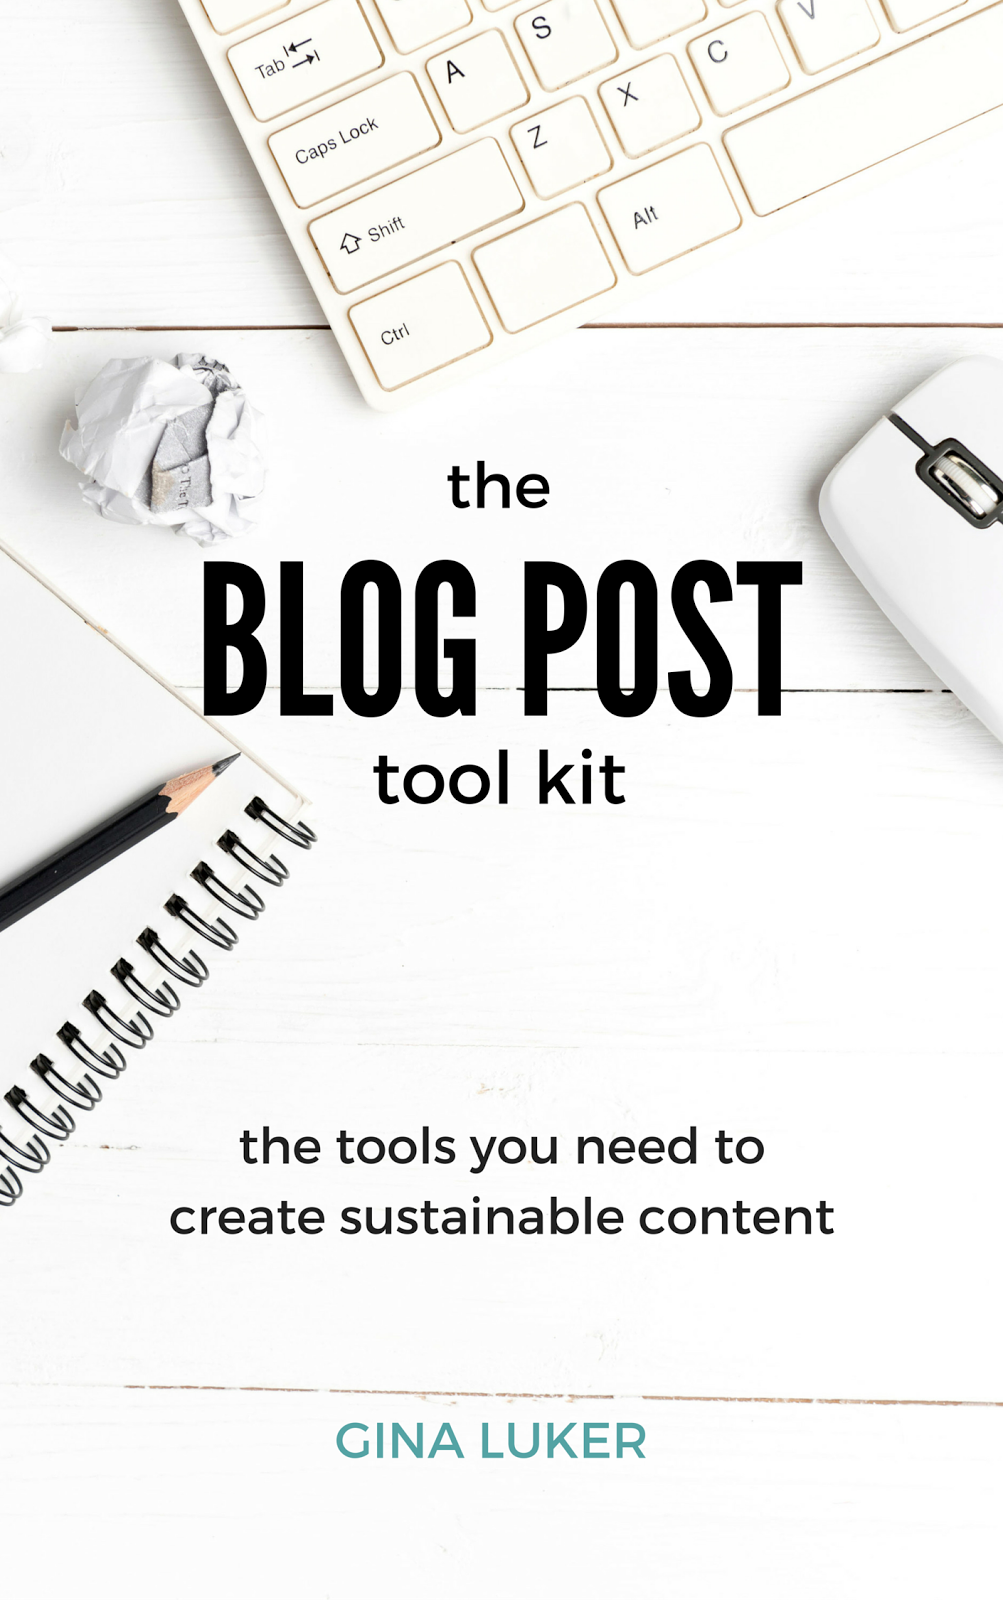 This is the Blog Tool Kit that I purchased from Gina Luker.